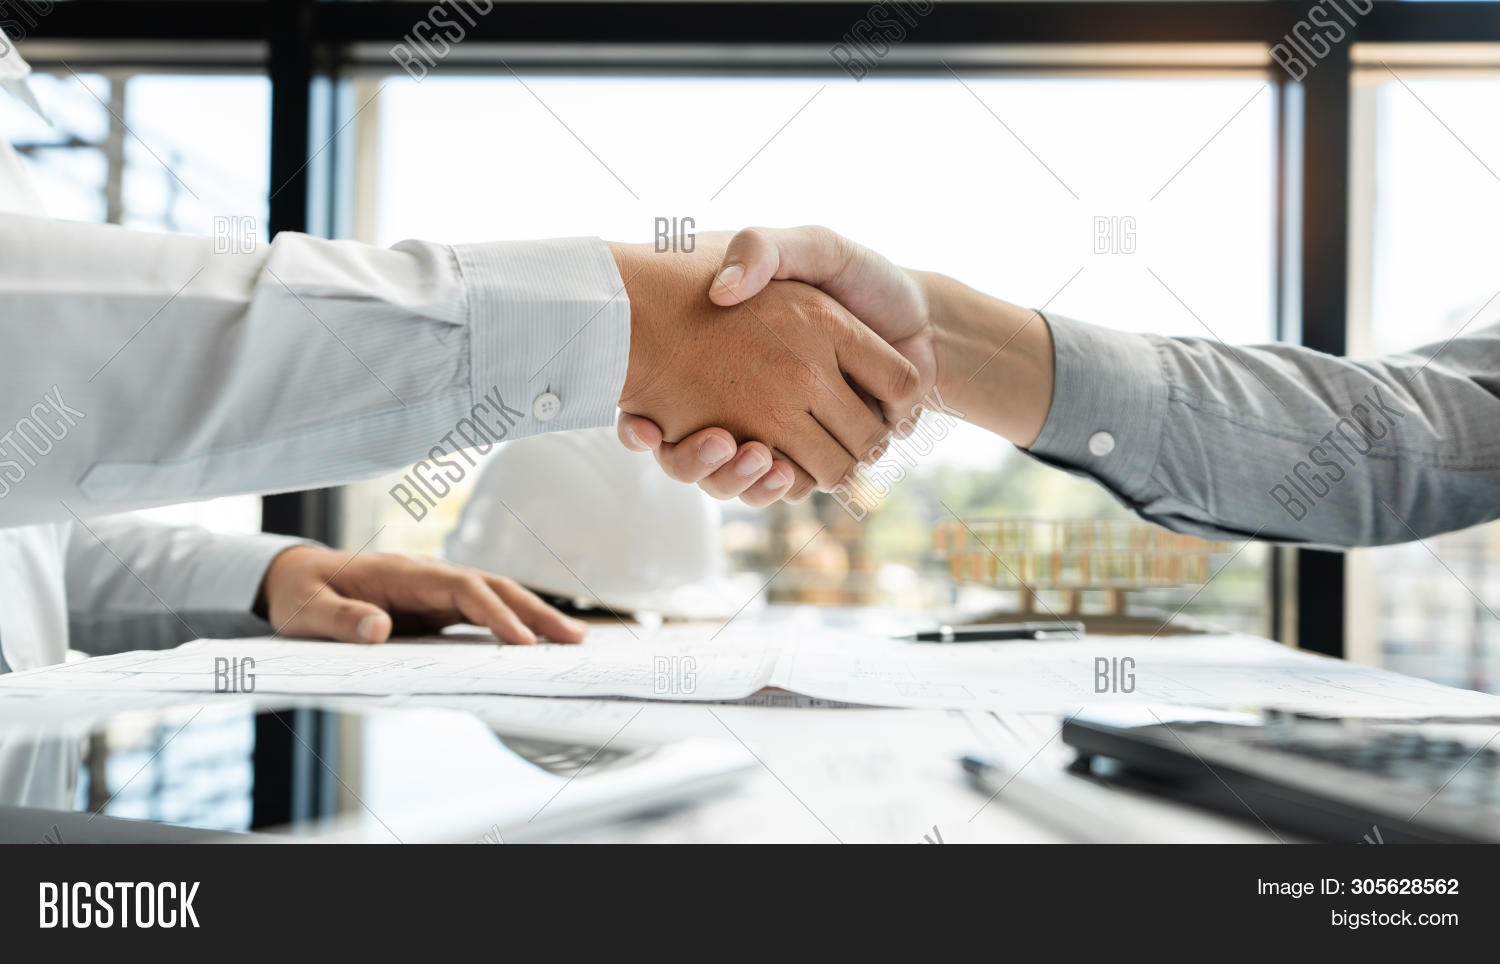 agreement,architect,architecture,blueprint,builder,building,business,businessman,concept,construction,contractor,cooperation,deal,engineer,factory,foreman,gesture,greeting,hand,handshake,hardhat,helmet,house,industrial,industry,investment,job,join,male,man,manager,meeting,occupation,partner,partnership,people,person,professional,project,real,safety,shake,site,success,successful,team,teamwork,together,work,worker